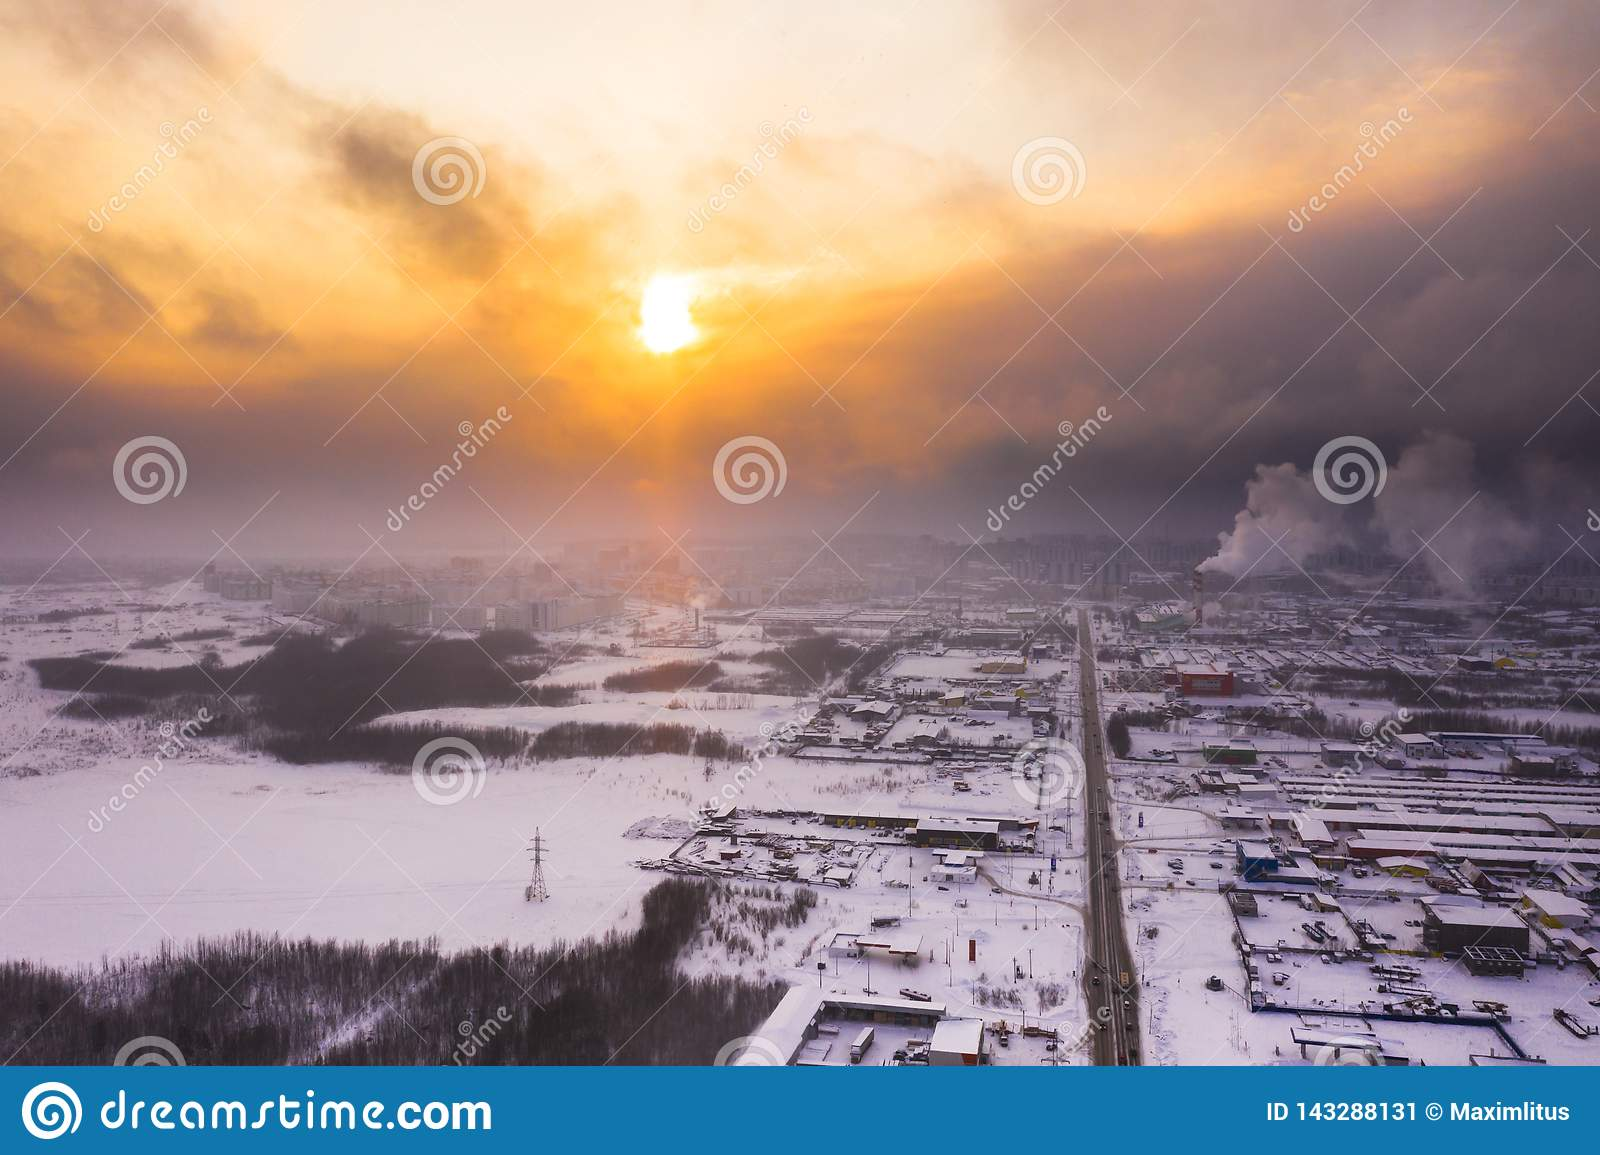 Sunset over the city in winter.